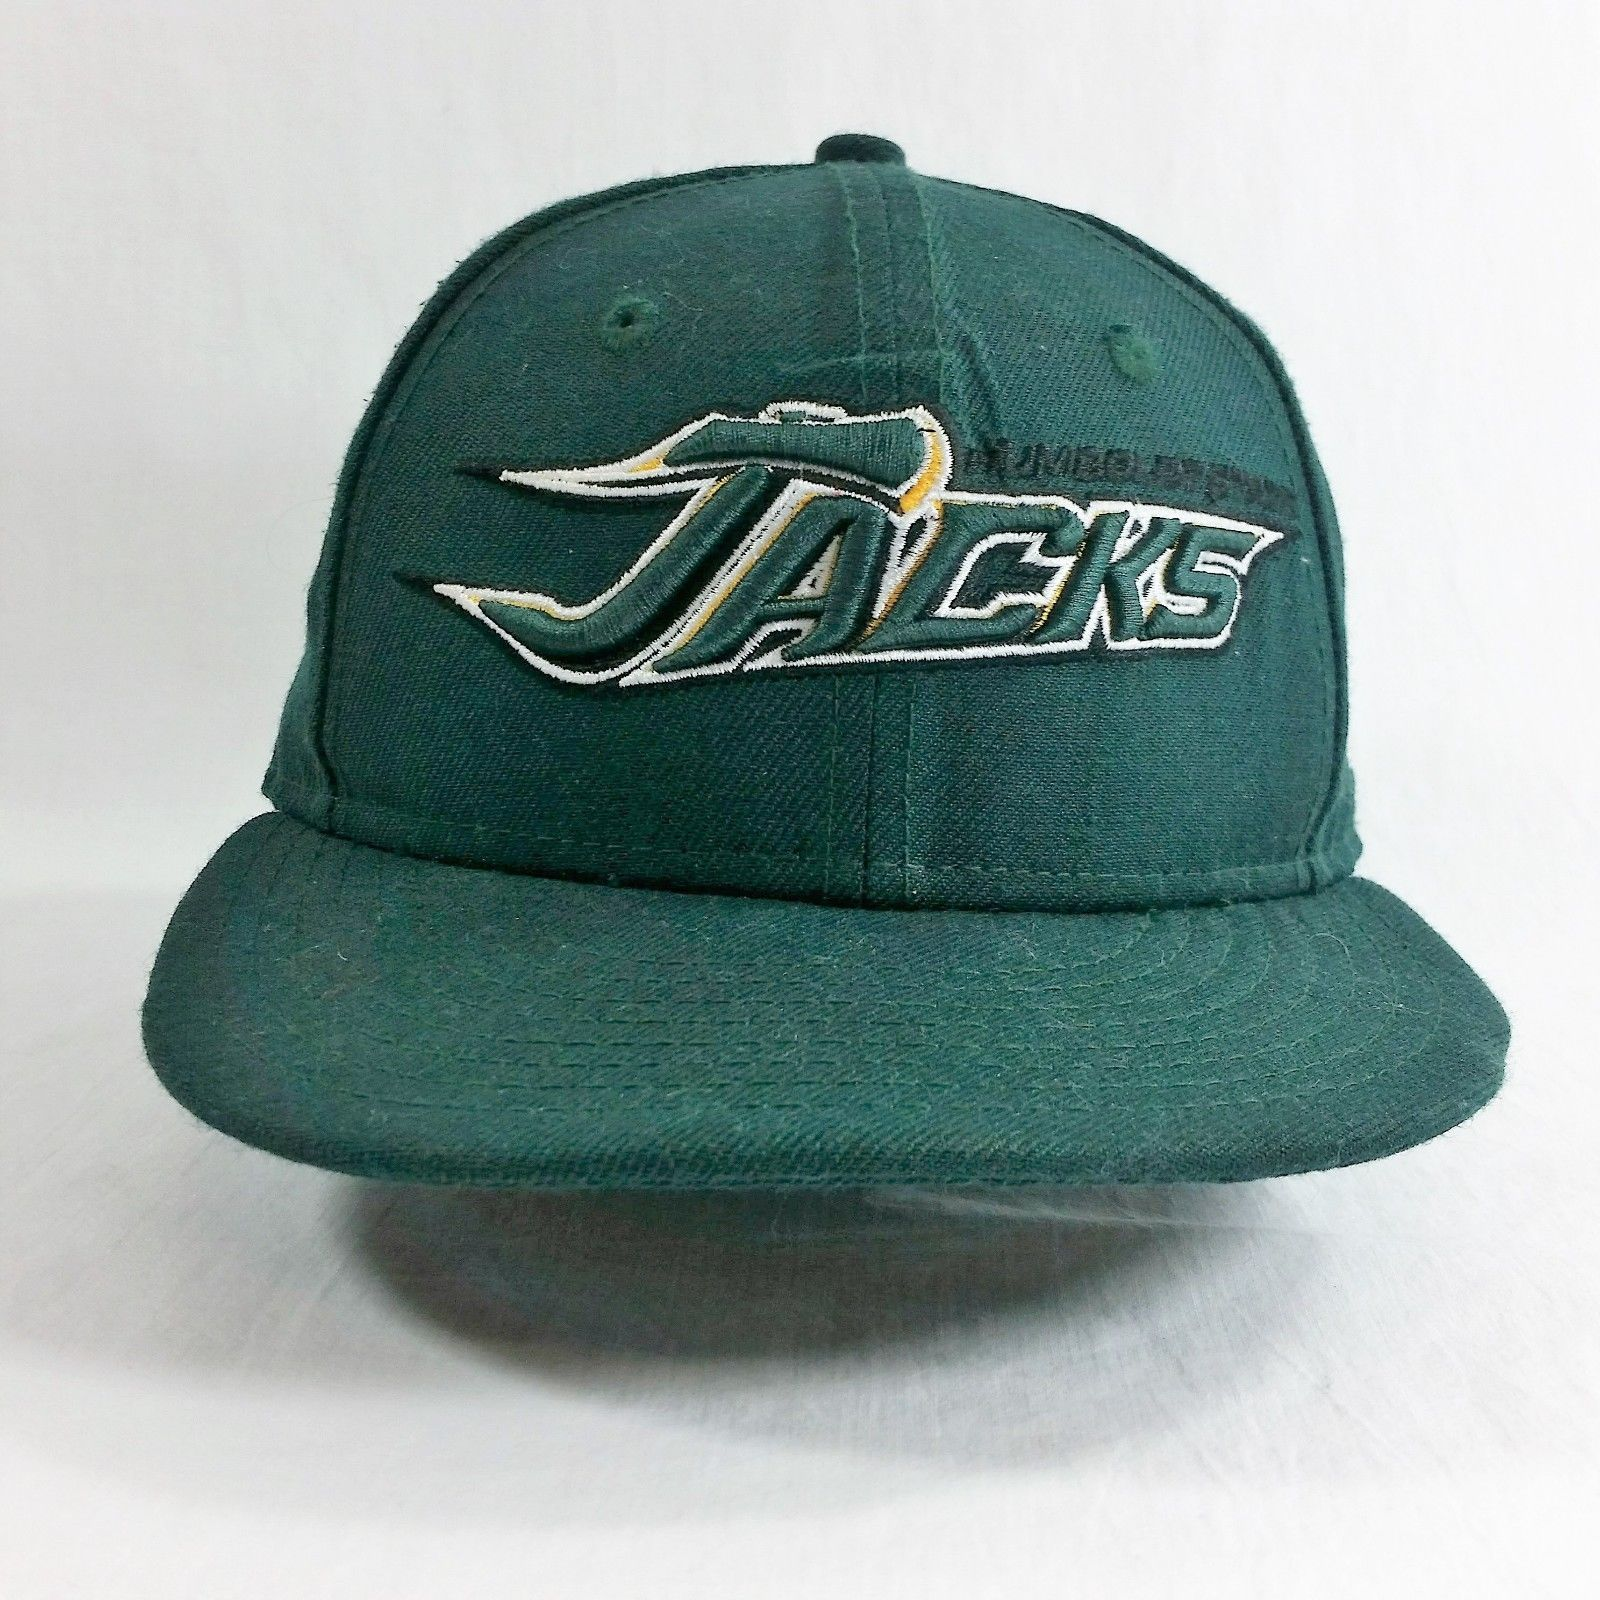 Humboldt State Lumberjacks HSU Fitted Cap Hat New Era 6 5/8 Jacks Wool 5950